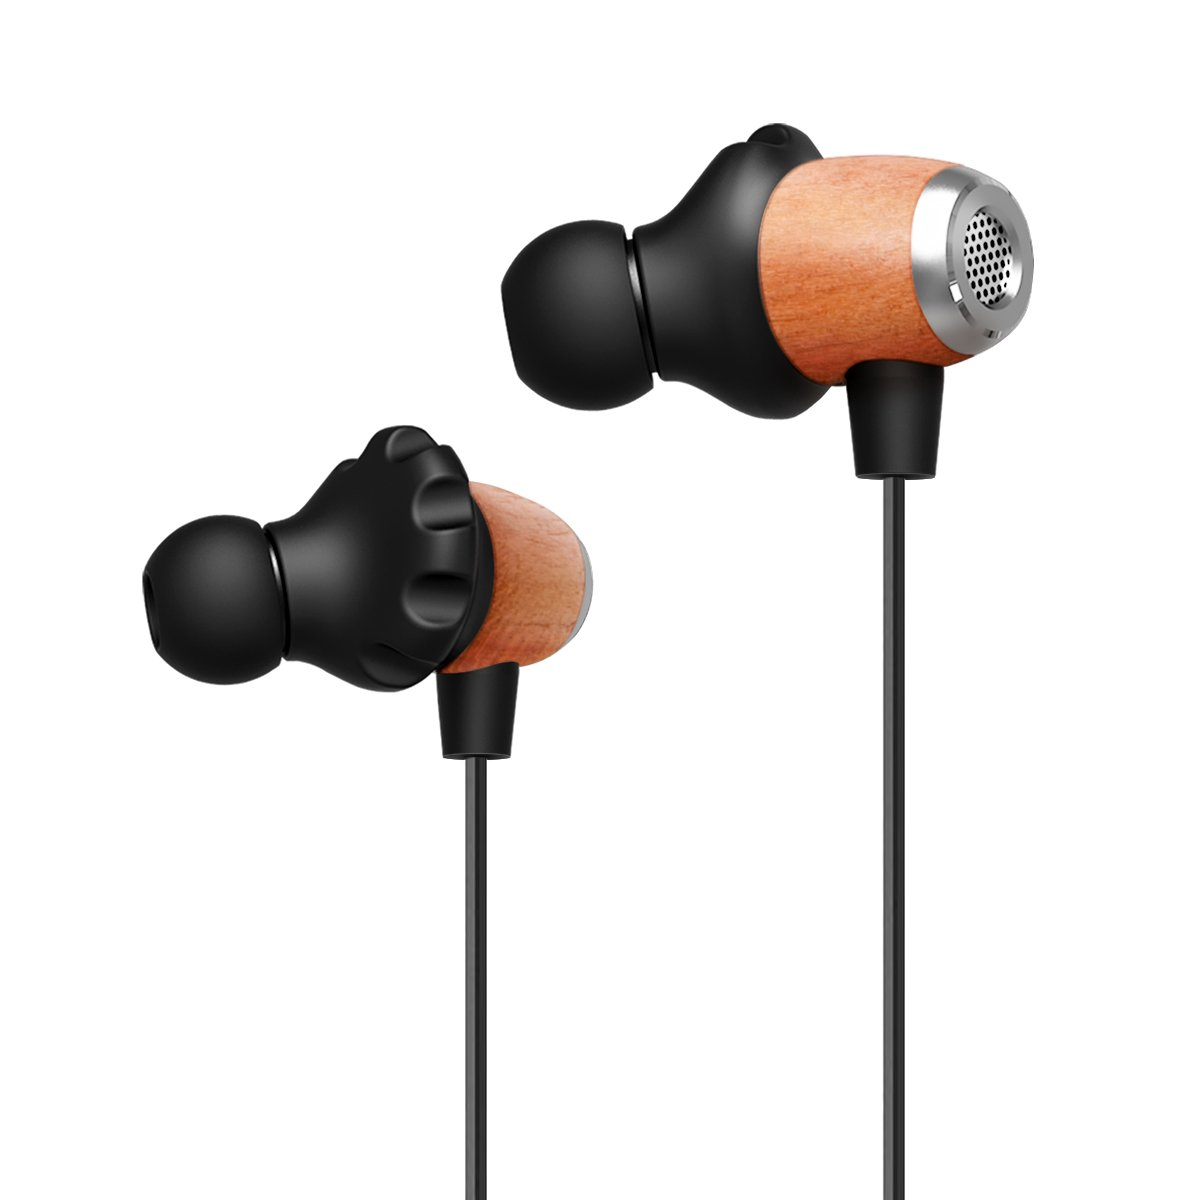 Wireless Bluetooth Wood In ear Noise isolating Headphones Earbuds Earphones with Microphones and Volume Control for iPhone iPad Android Smartphones